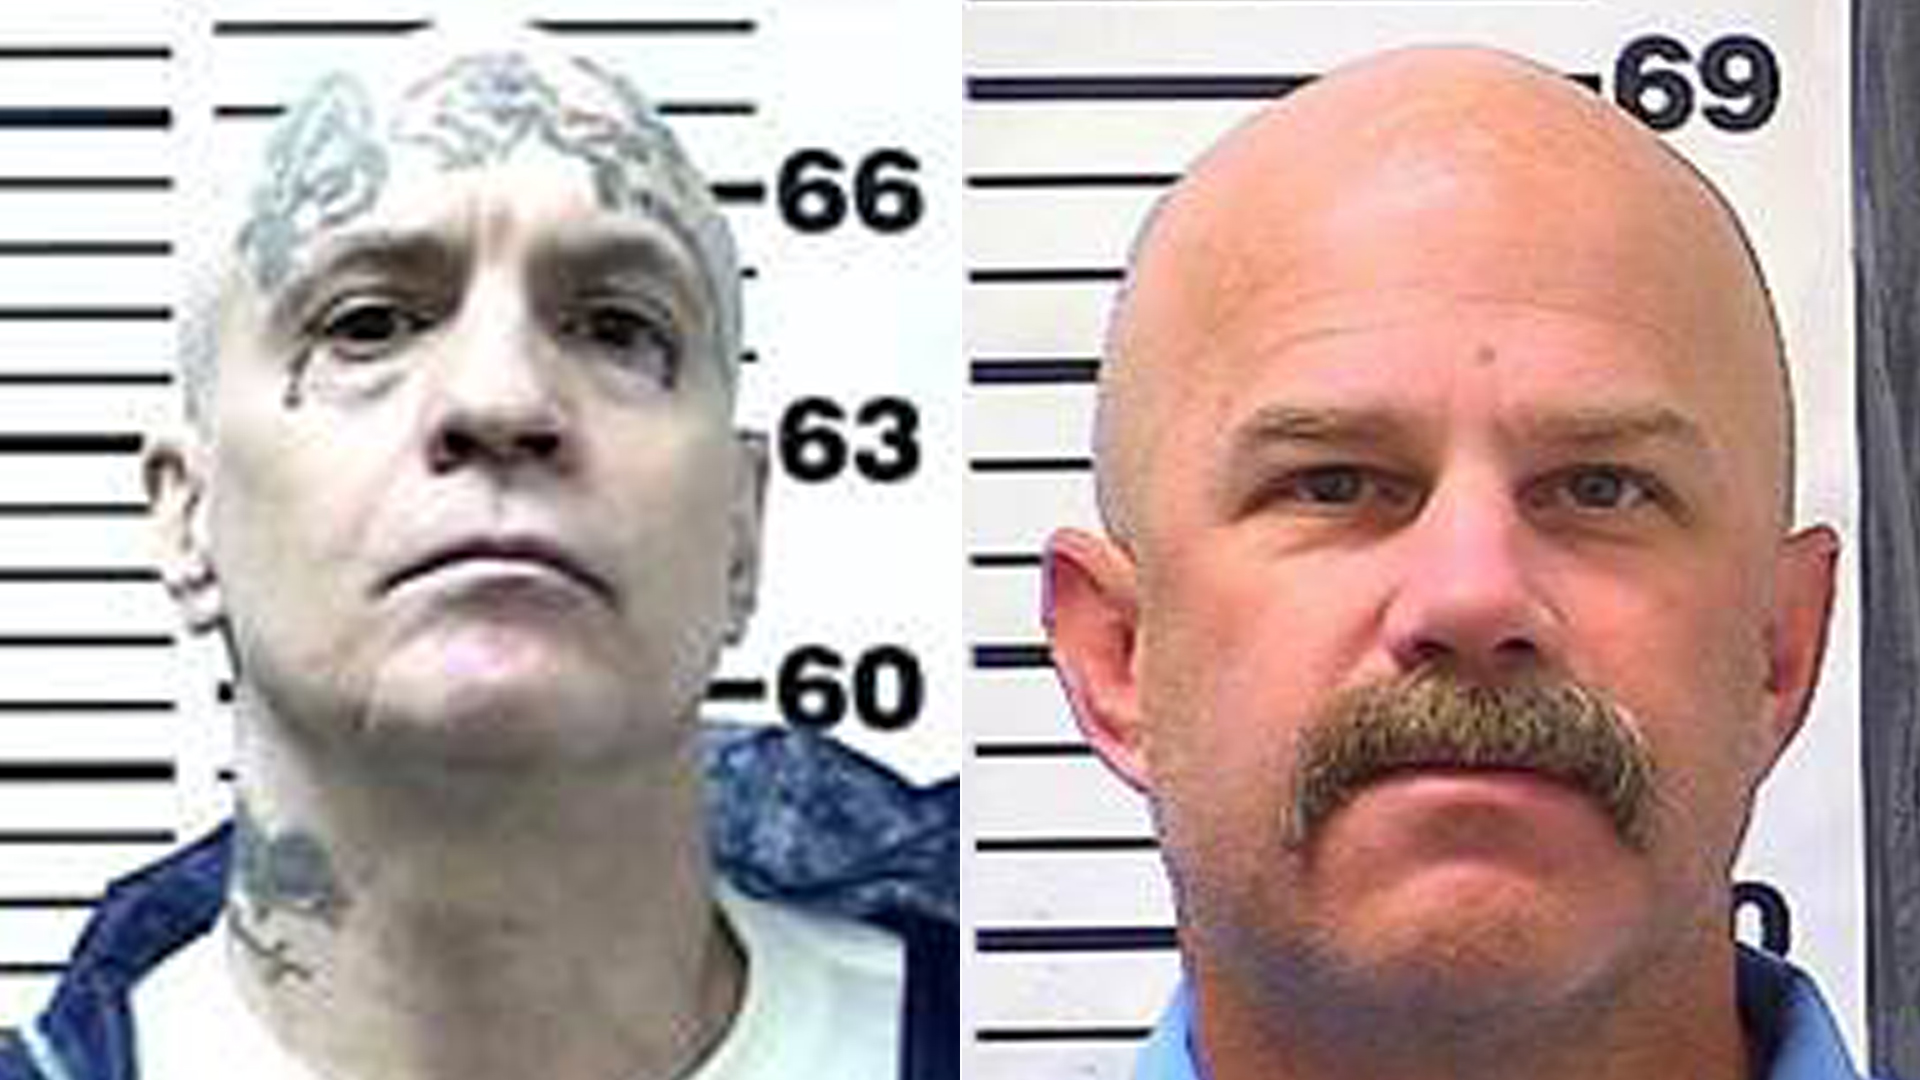 From left to right: Ronald Yandell and William Sylvester are see in undated photos released by the California Department of Corrections and Rehabilitation.